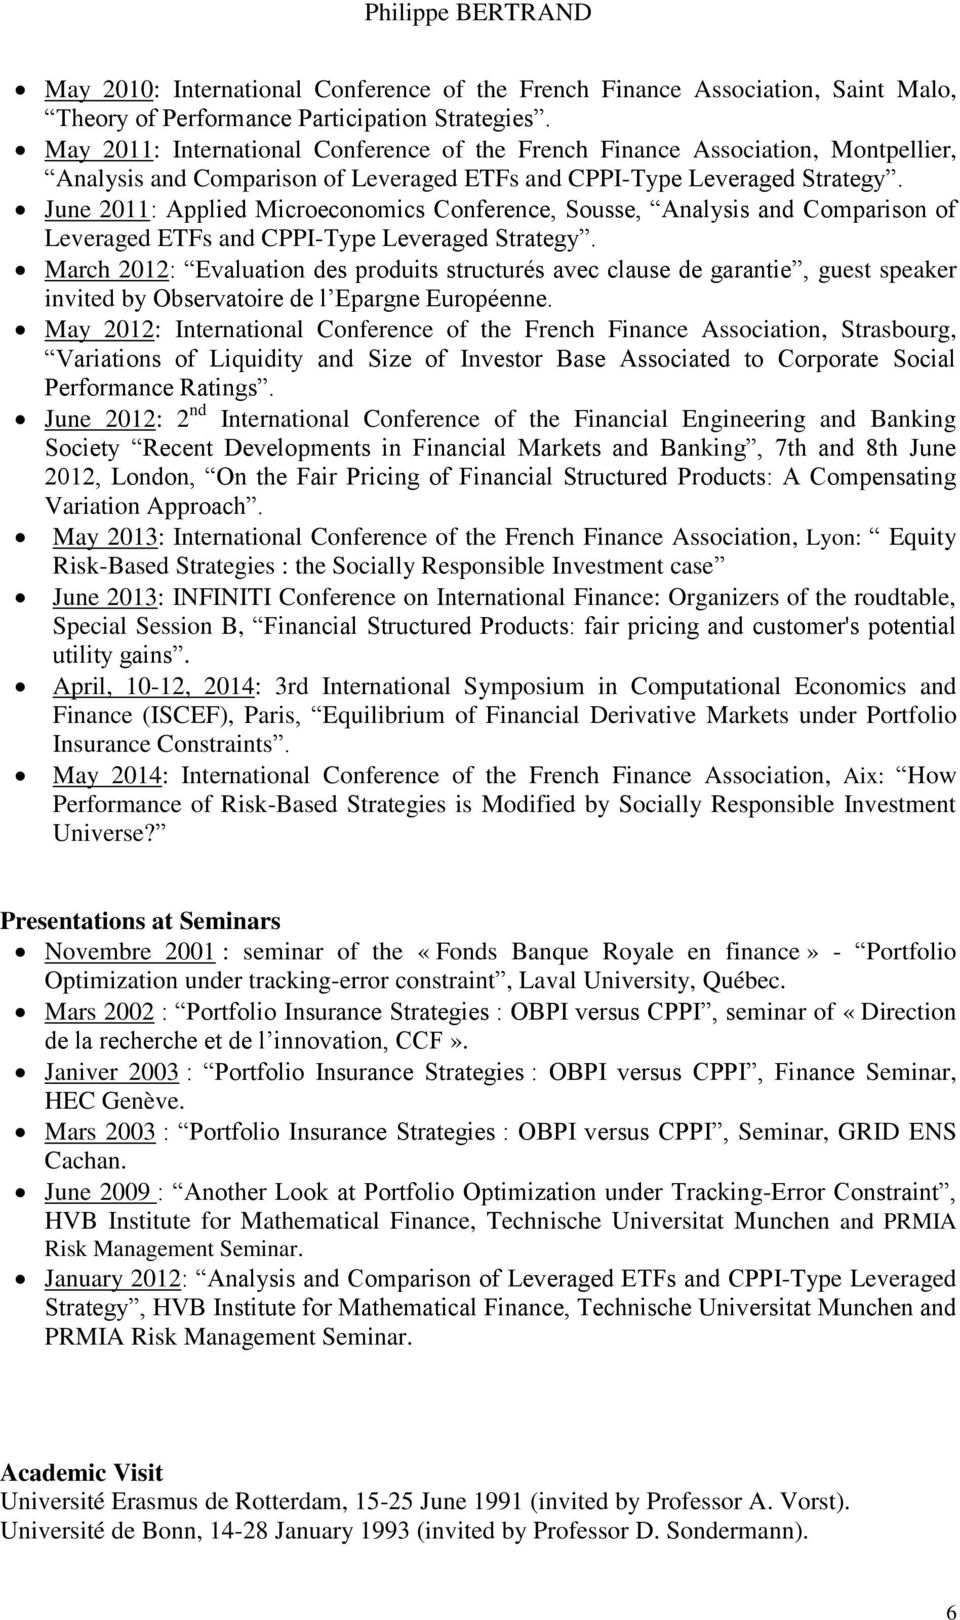 June 2011: Applied Microeconomics Conference, Sousse, Analysis and Comparison of Leveraged ETFs and CPPI-Type Leveraged Strategy.